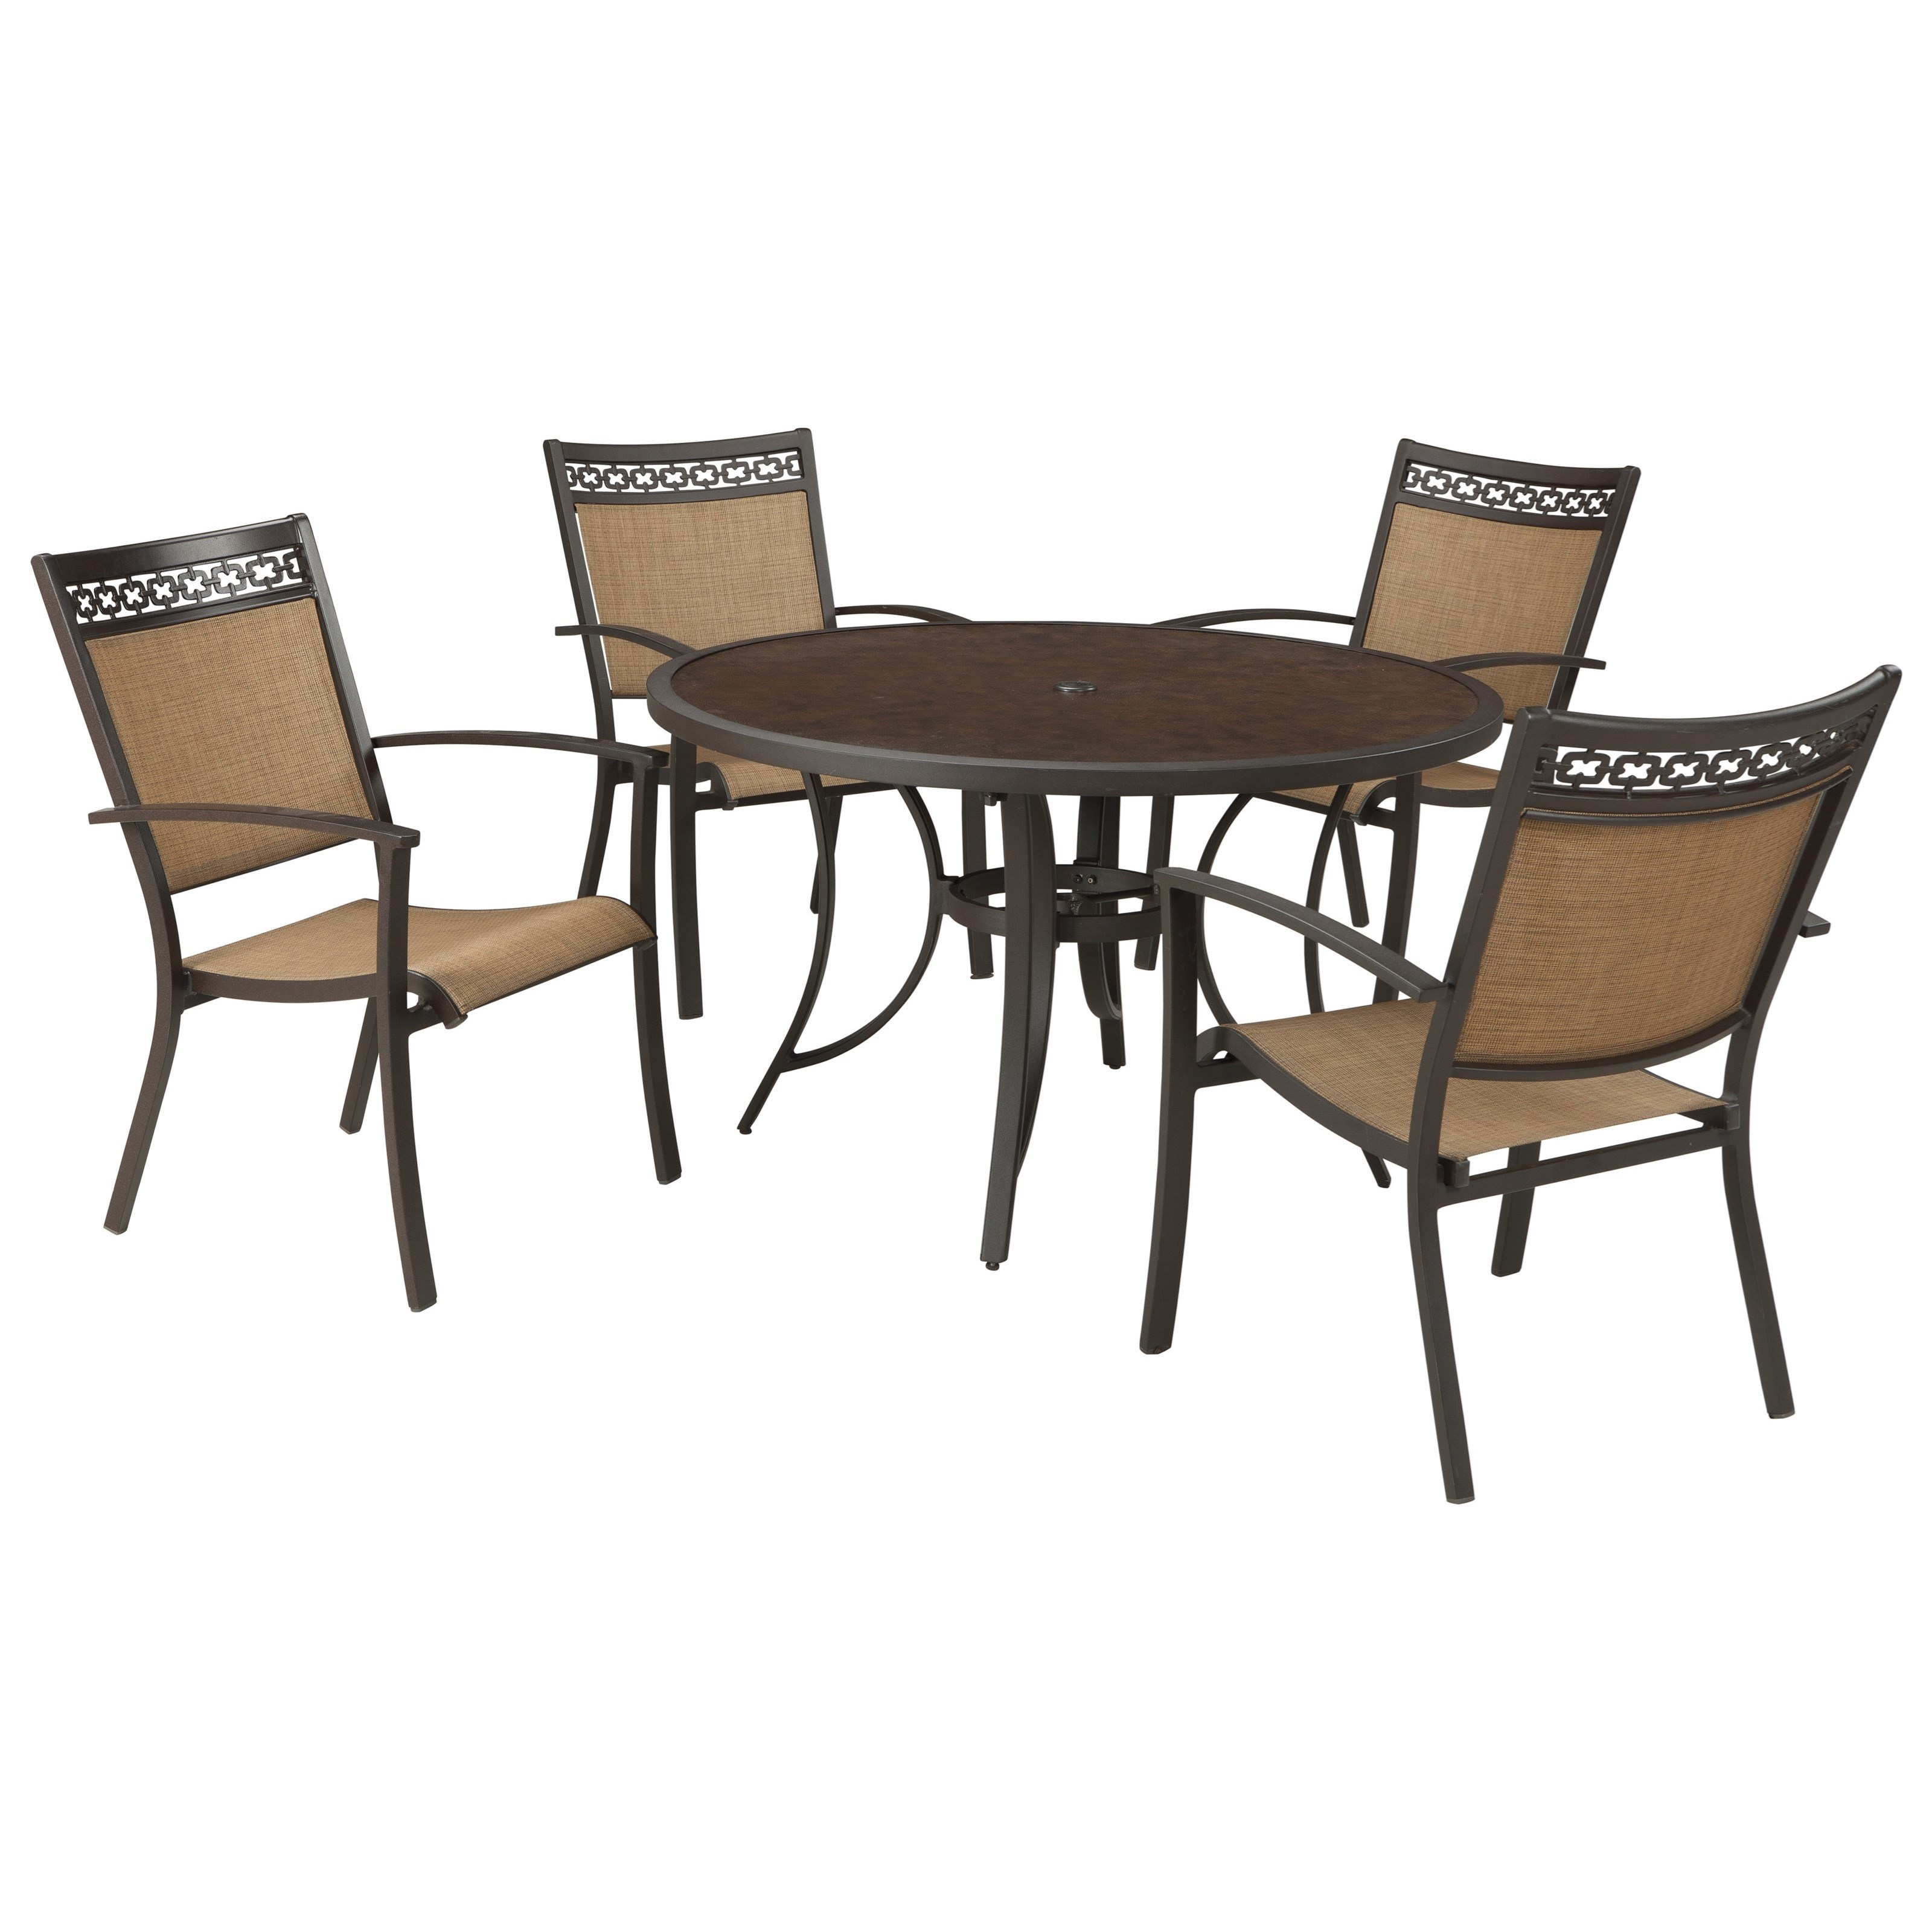 Outdoor round dining table - Signature Design By Ashley Carmadelia Outdoor Round Dining Table Set Item Number P376